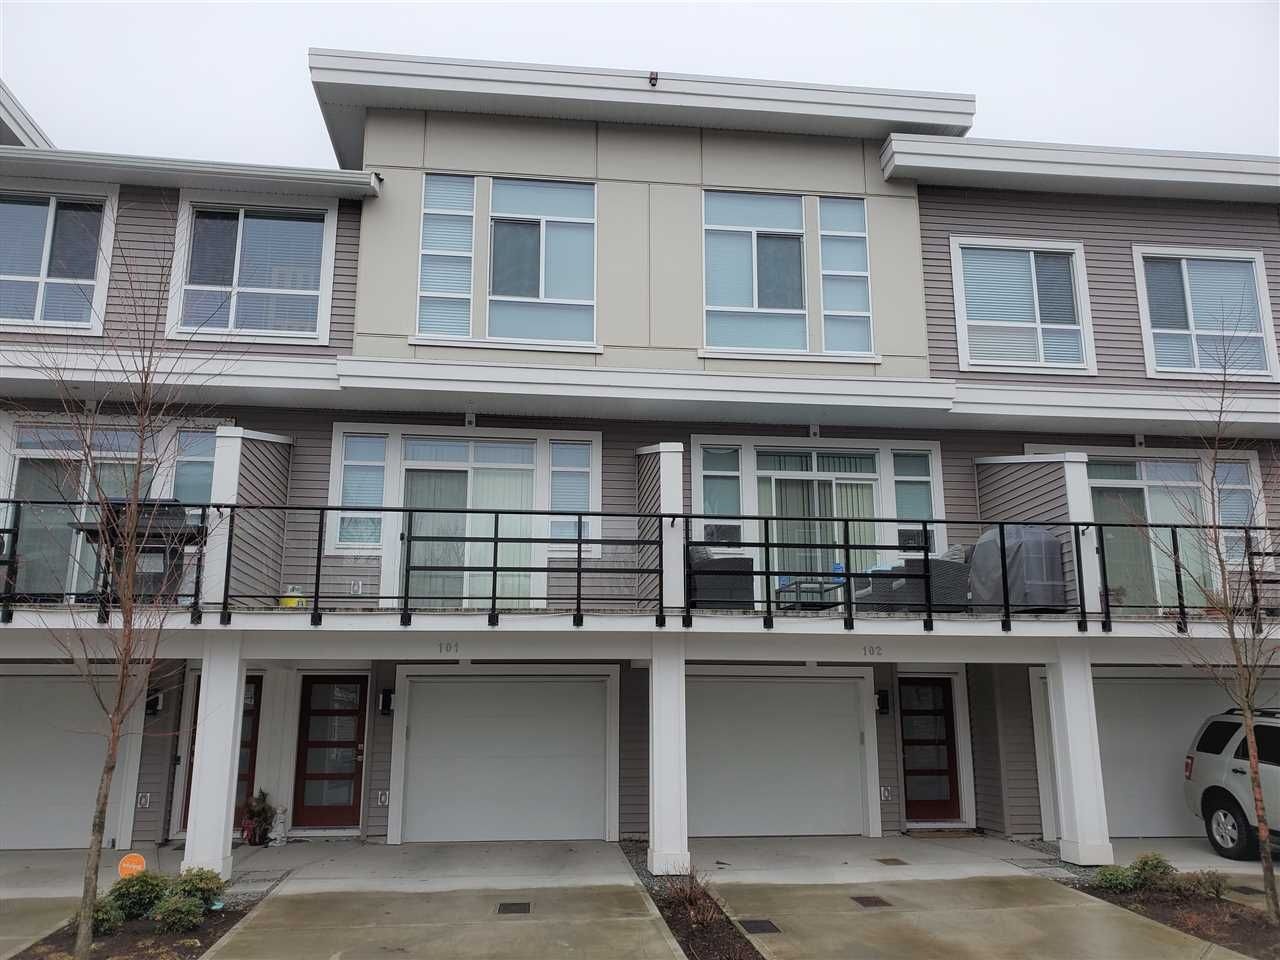 Main Photo: 95 8413 MIDTOWN Way in Chilliwack: Chilliwack W Young-Well Townhouse for sale : MLS®# R2570960